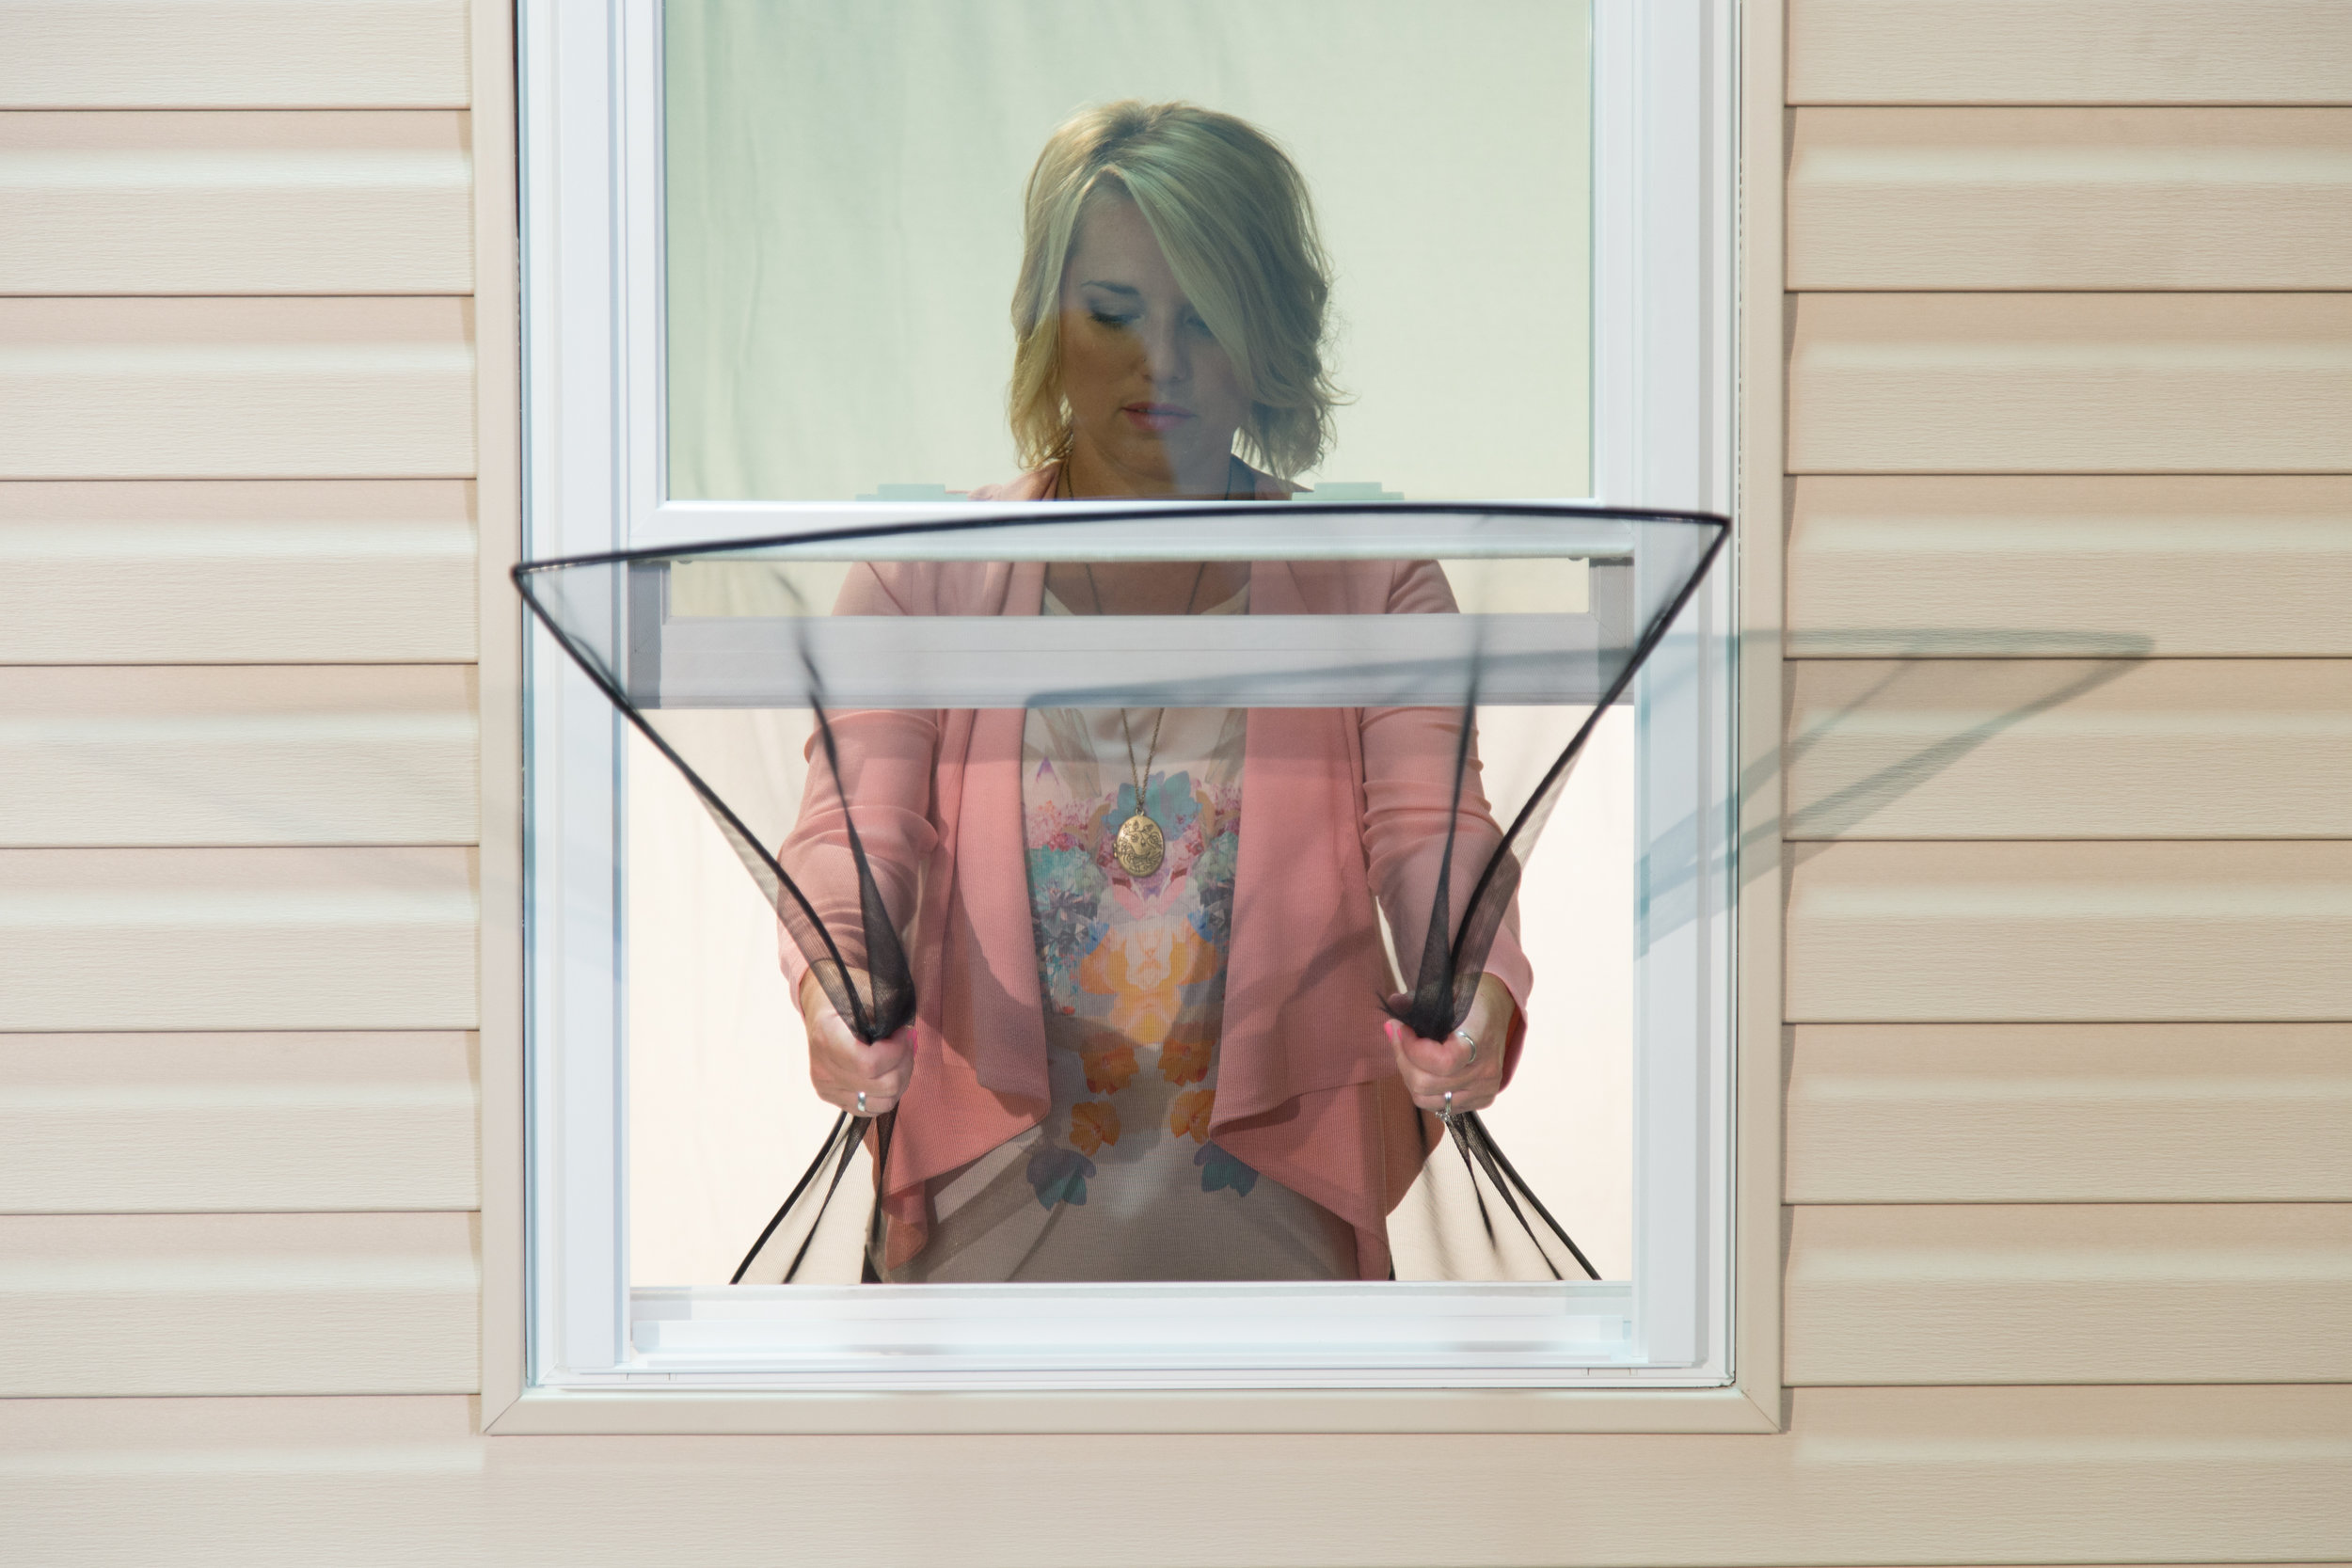 The FlexScreen is the world's first flexible window screen. Find it this spring at Wallside Windows.